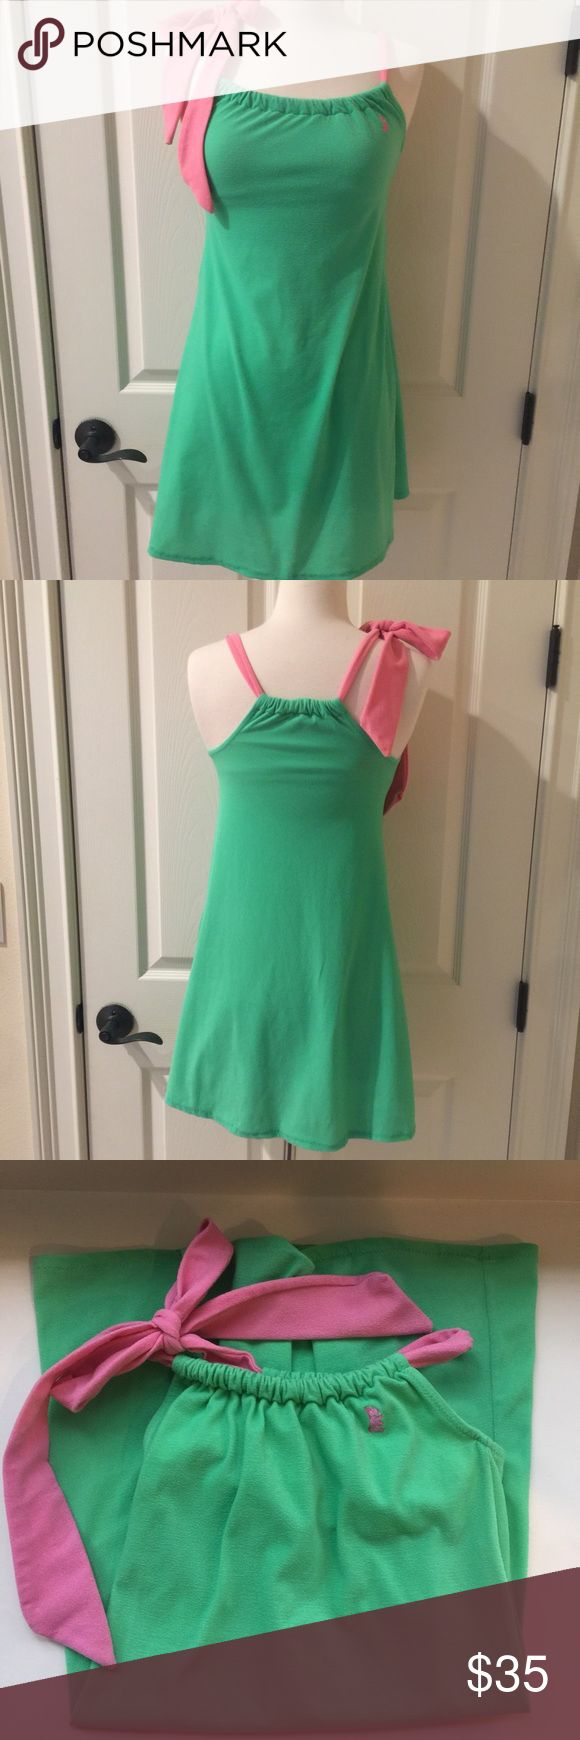 Juicy Couture swimsuit cover up size medium Juicy Couture swimsuit coverup size medium in mint green and pink. Built in bra and in excellent condition. Juicy Couture Swim Coverups